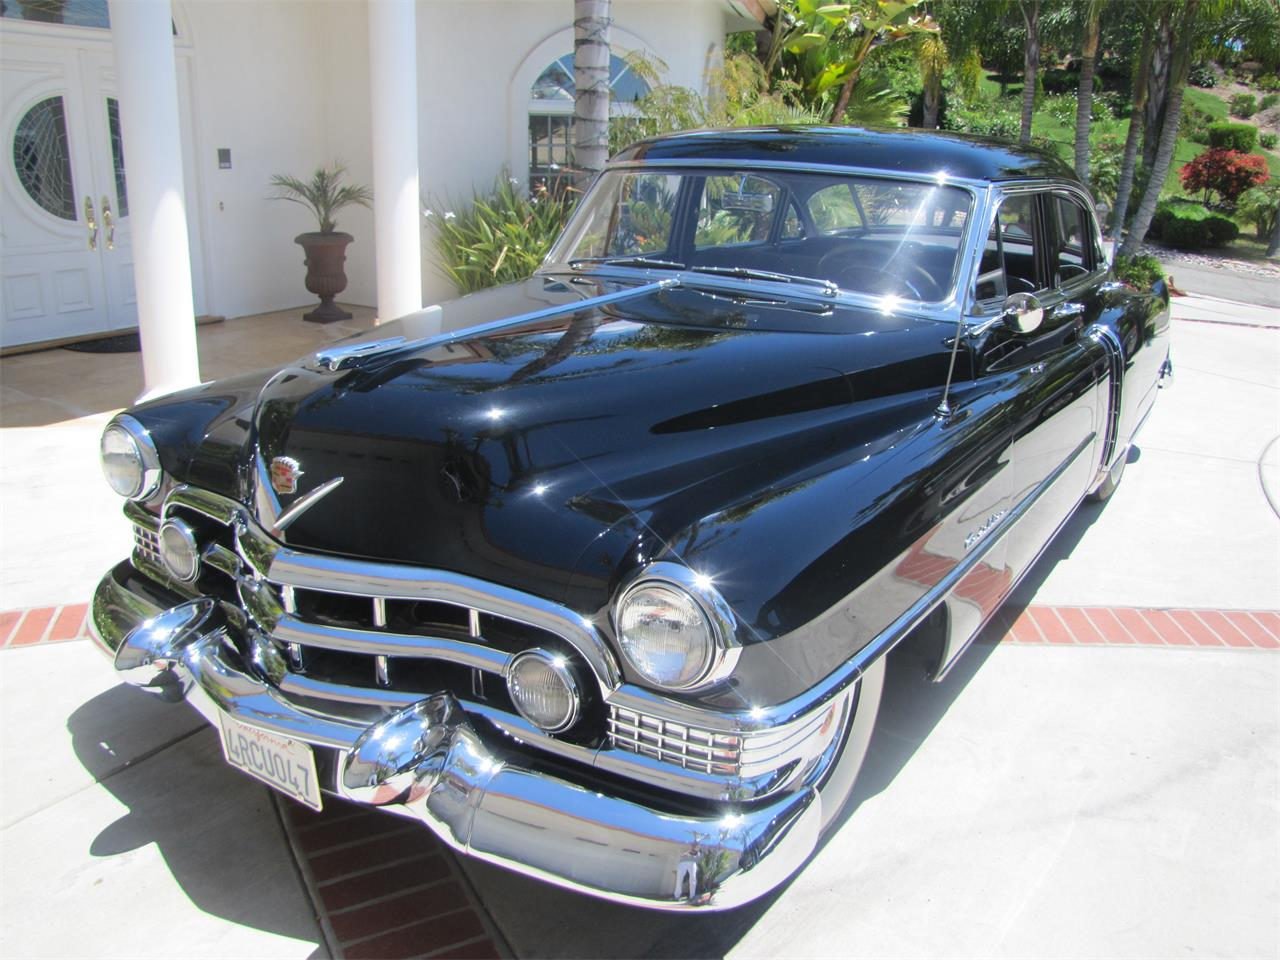 Large Picture of Classic 1951 Cadillac Sedan - $25,000.00 - MLNS